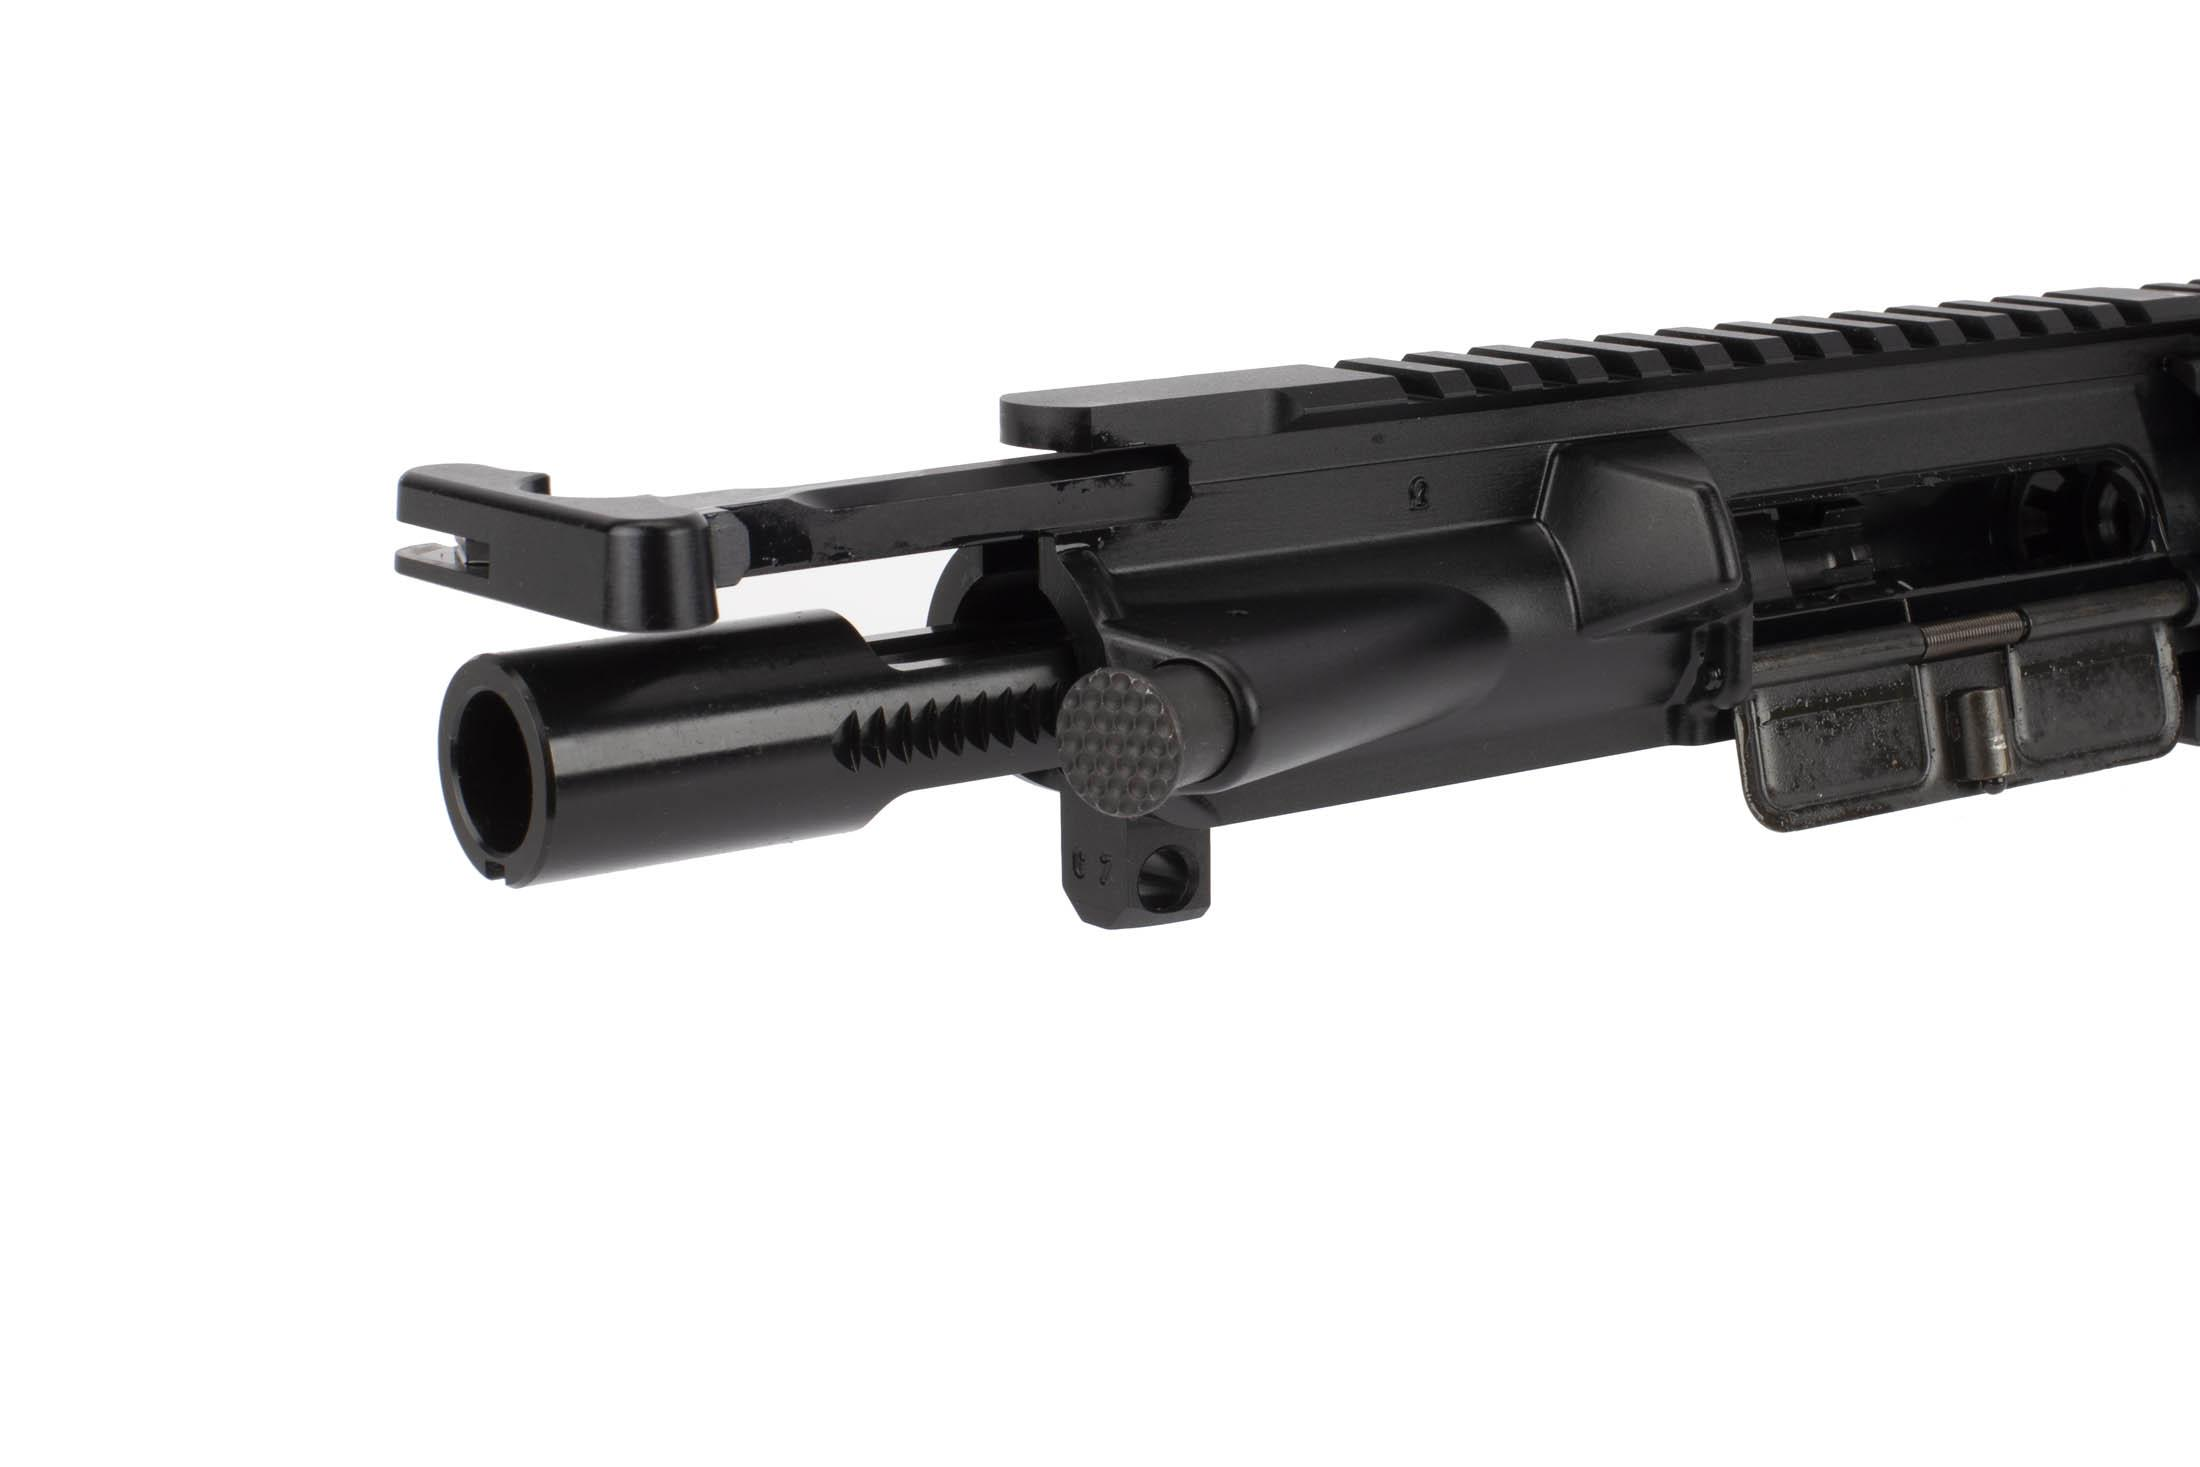 Radical Firearms 5.56 NATO complete 16in AR-15 upper receiver with nitride M16 BCG and standard charging handle